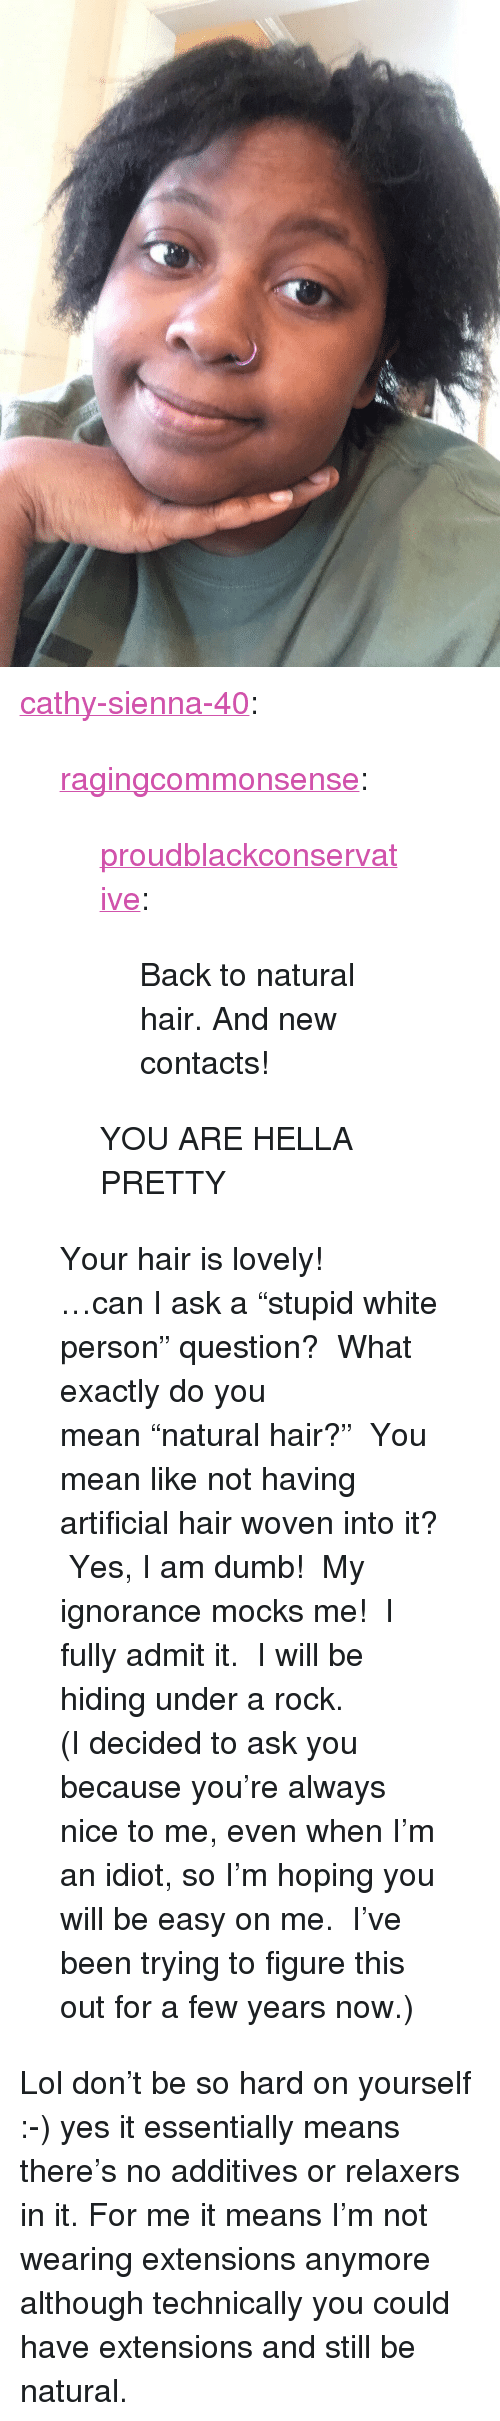 """Dumb, Lol, and Tumblr: <p><a href=""""http://cathy-sienna-40.tumblr.com/post/155681145299/proudblackconservative-back-to-natural-hair"""" class=""""tumblr_blog"""">cathy-sienna-40</a>:</p>  <blockquote><p><a href=""""http://ragingcommonsense.tumblr.com/post/155681049873/back-to-natural-hair-and-new-contacts"""" class=""""tumblr_blog"""">ragingcommonsense</a>:</p><blockquote> <p><a href=""""https://proudblackconservative.tumblr.com/post/155680308804/back-to-natural-hair-and-new-contacts"""" class=""""tumblr_blog"""">proudblackconservative</a>:</p>  <blockquote><p>Back to natural hair. And new contacts!</p></blockquote>  <p>YOU ARE HELLA PRETTY</p> </blockquote> <p>Your hair is lovely!</p><p>…can I ask a""""stupid white person"""" question? What exactly do you mean""""natural hair?"""" You mean like not having artificial hair woven into it? Yes, I am dumb! My ignorance mocks me! I fully admit it. I will be hiding under a rock.</p><p>(I decided to ask you because you're always nice to me, even when I'm an idiot, so I'm hoping you will be easy on me. I've been trying to figure this out for a few years now.)</p></blockquote>  <p>Lol don&rsquo;t be so hard on yourself :-) yes it essentially means there&rsquo;s no additives or relaxers in it. For me it means I&rsquo;m not wearing extensions anymore although technically you could have extensions and still be natural.</p>"""